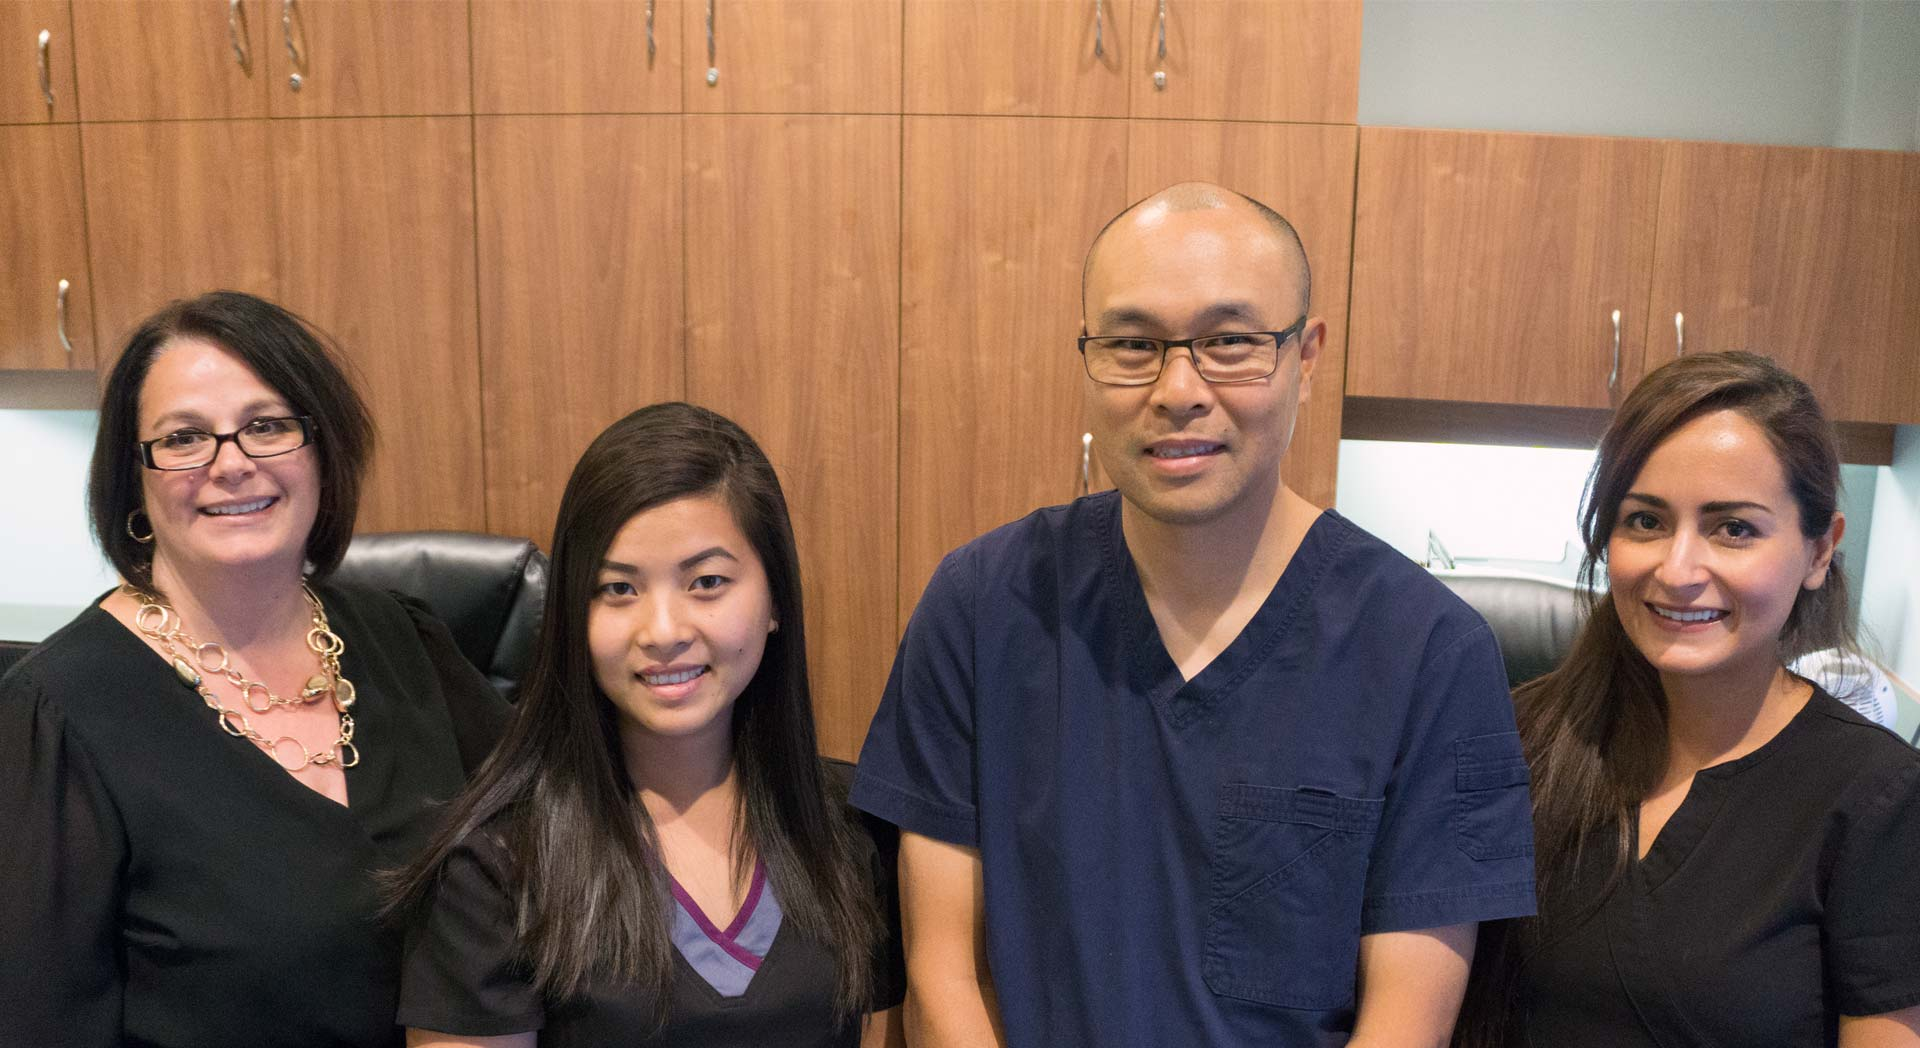 The NW Endodontics Team